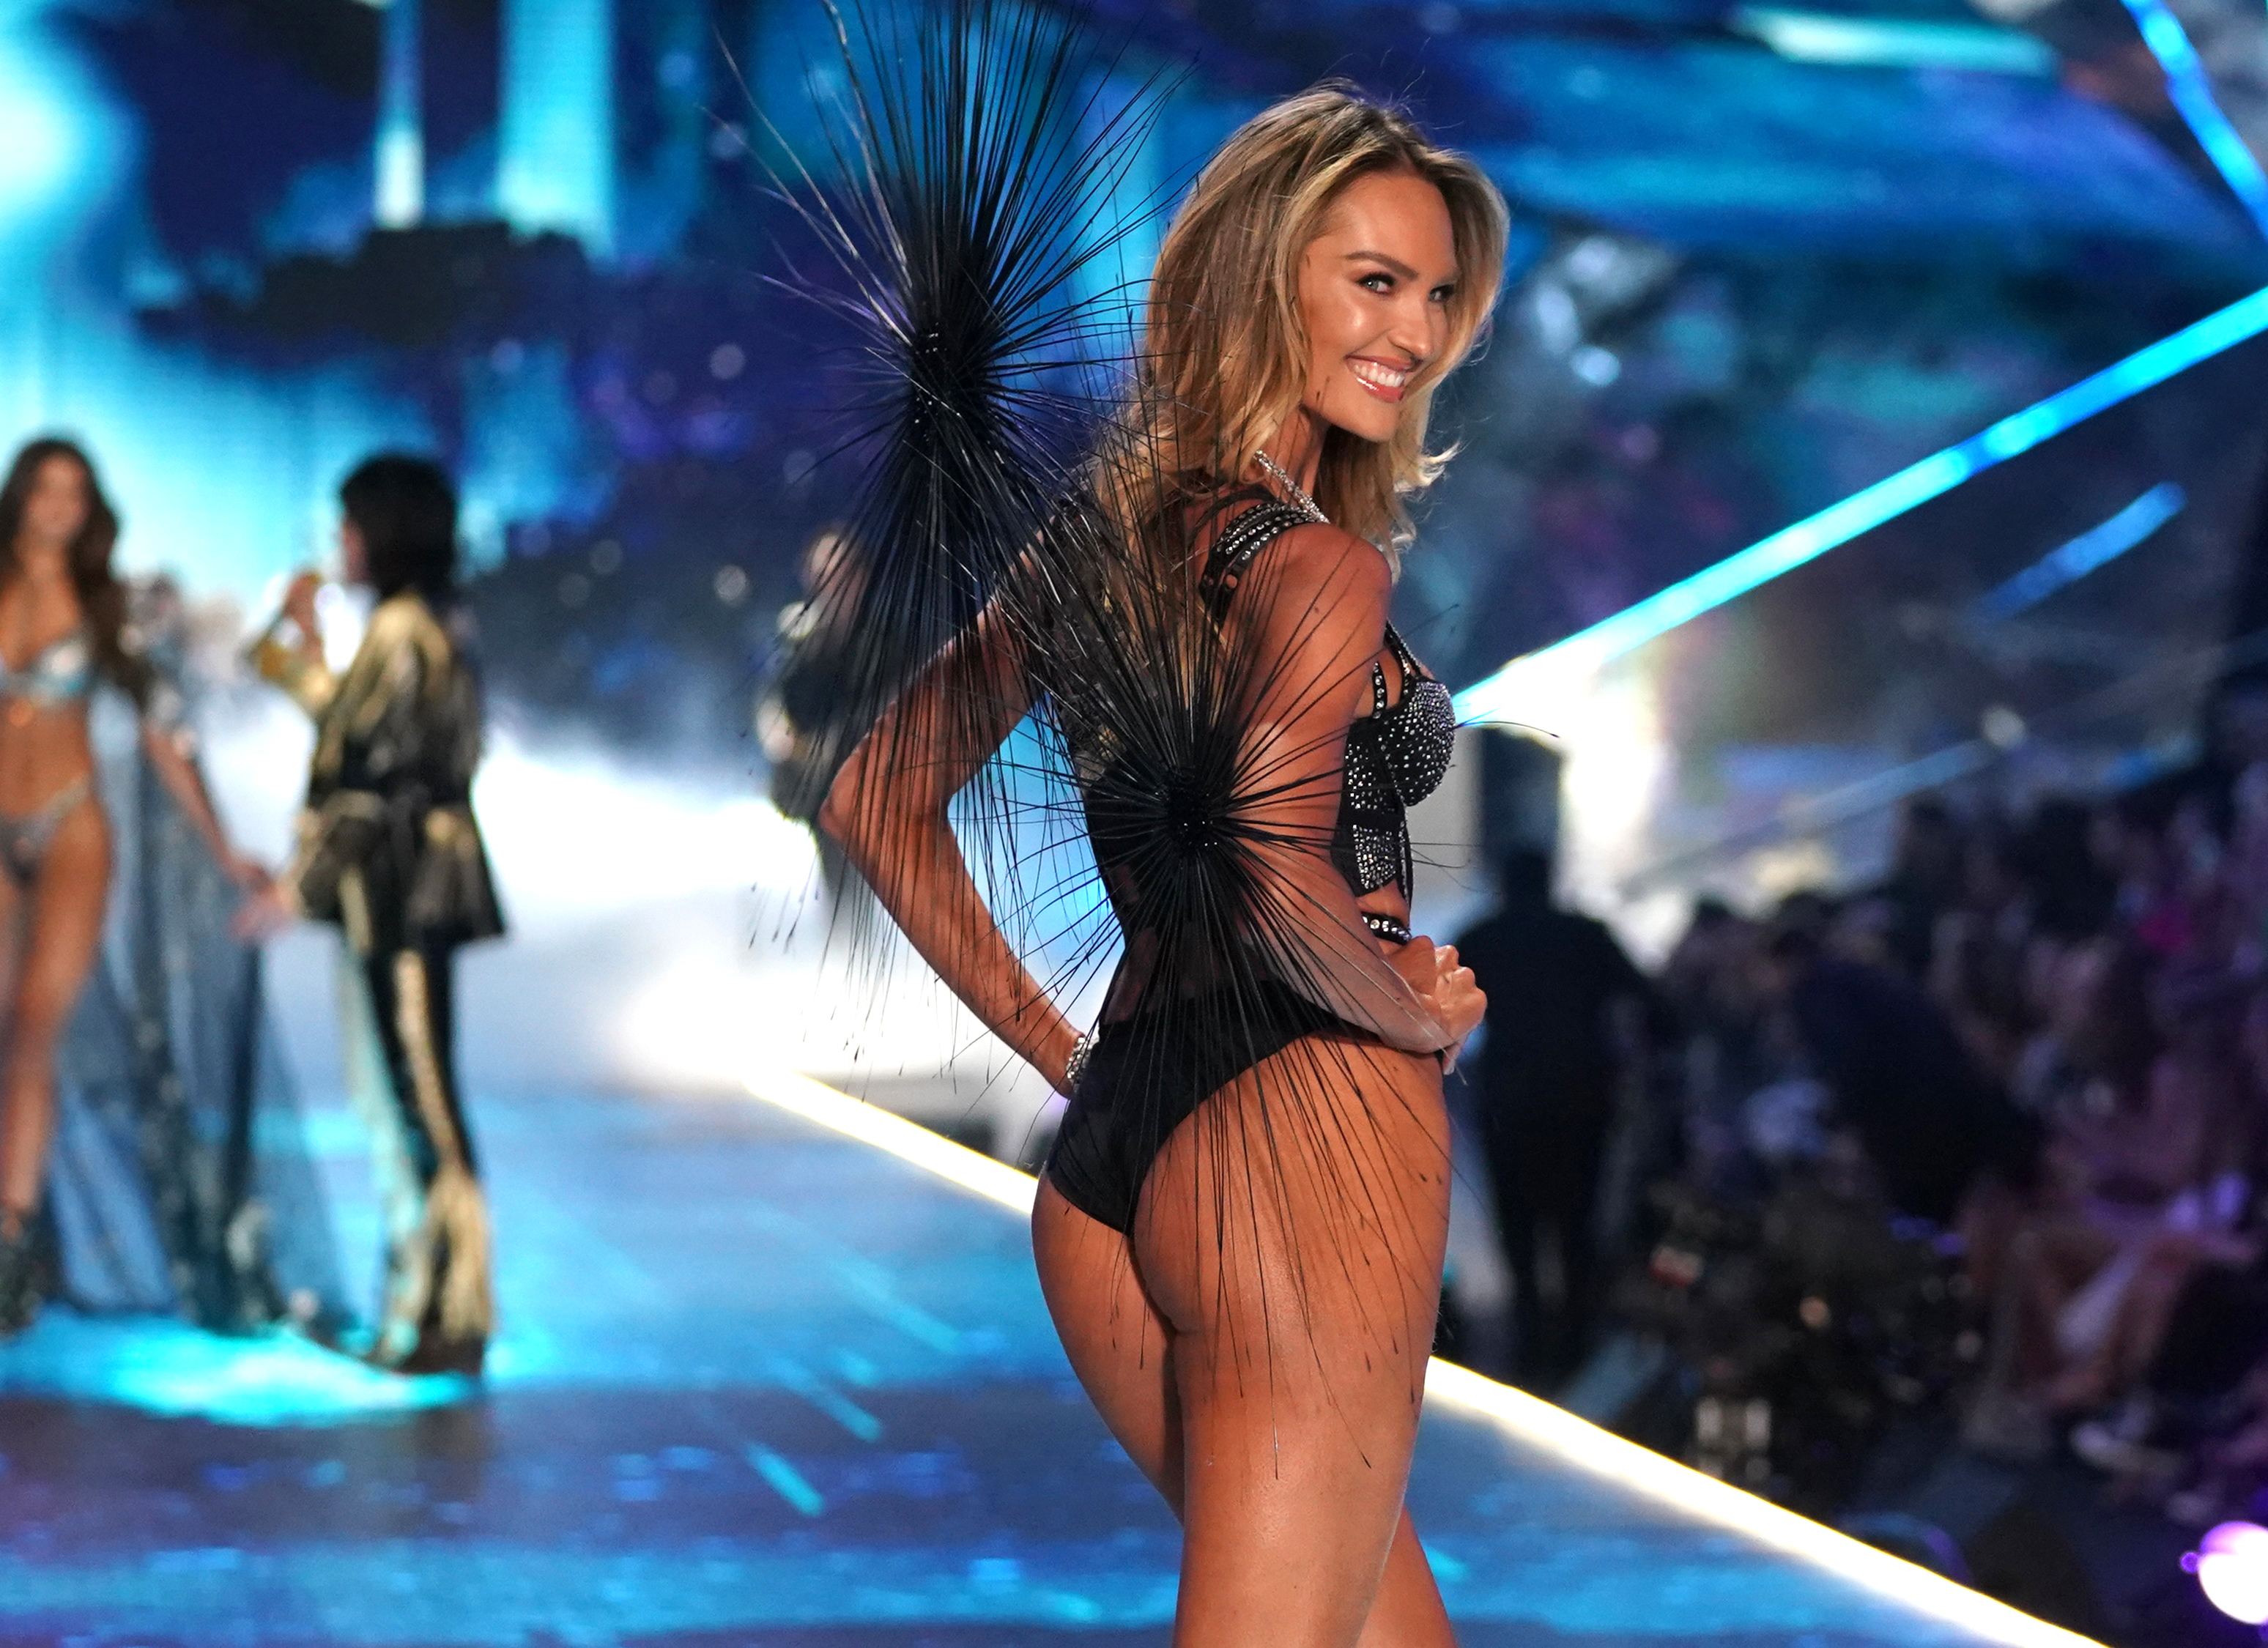 South African model Candice Swanepoel. (Photo by TIMOTHY A. CLARY / AFP)